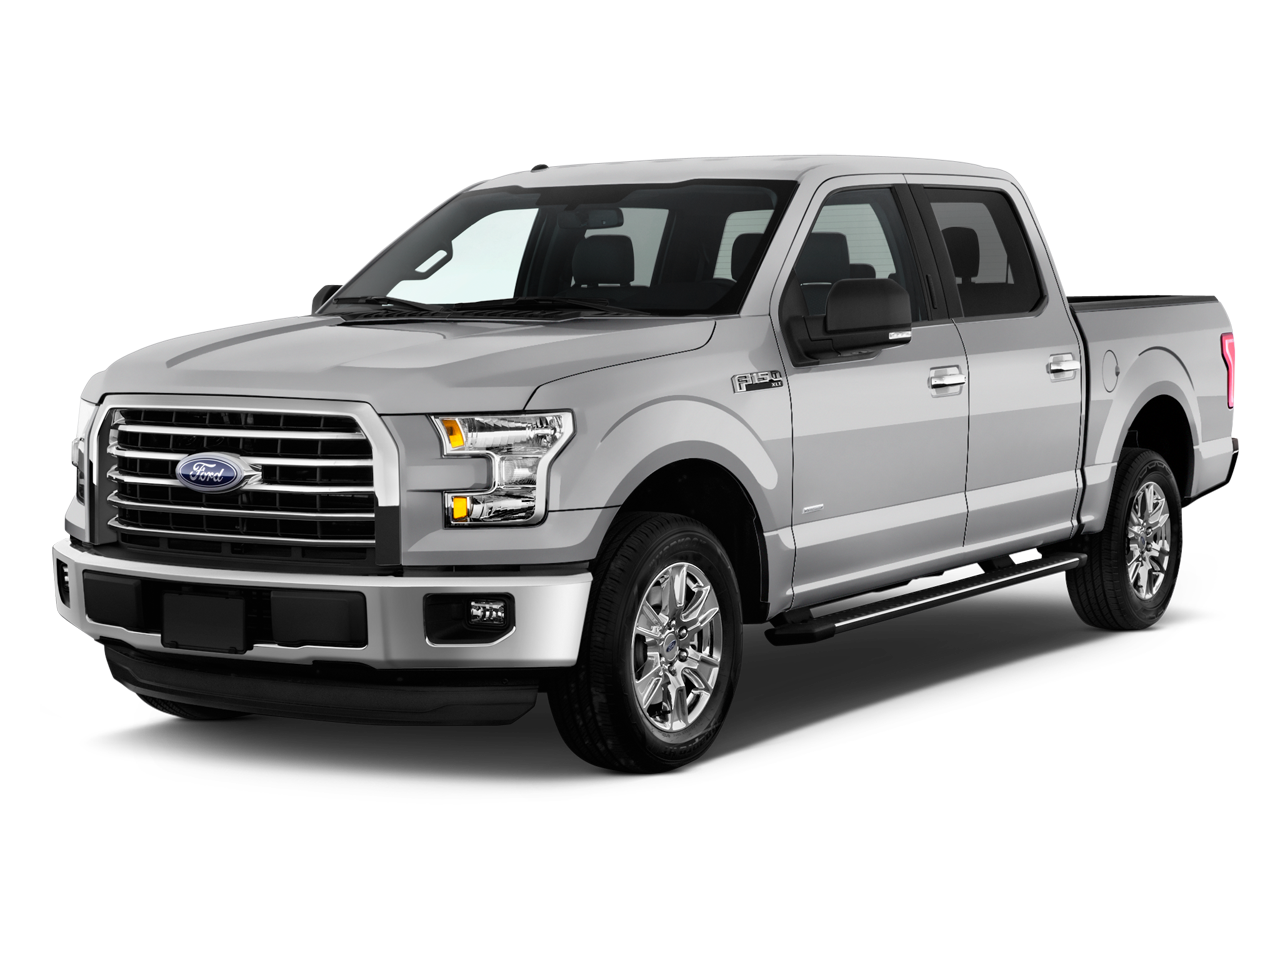 new 2016 ford f 150 near gainesville ga greene ford. Black Bedroom Furniture Sets. Home Design Ideas